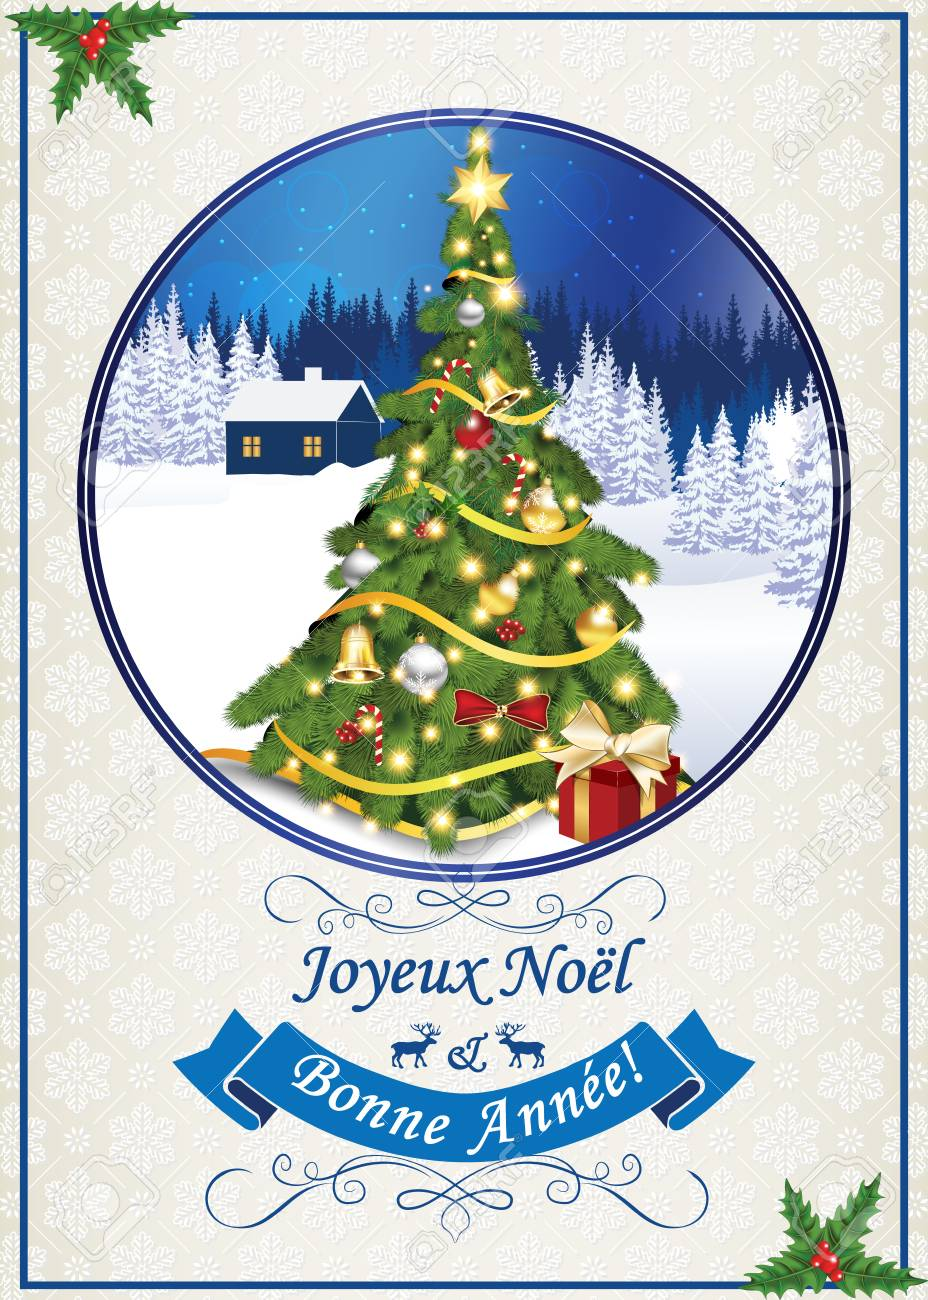 French seasons greetings classic winter card we wish you merry french seasons greetings classic winter card we wish you merry christmas and happy new kristyandbryce Image collections